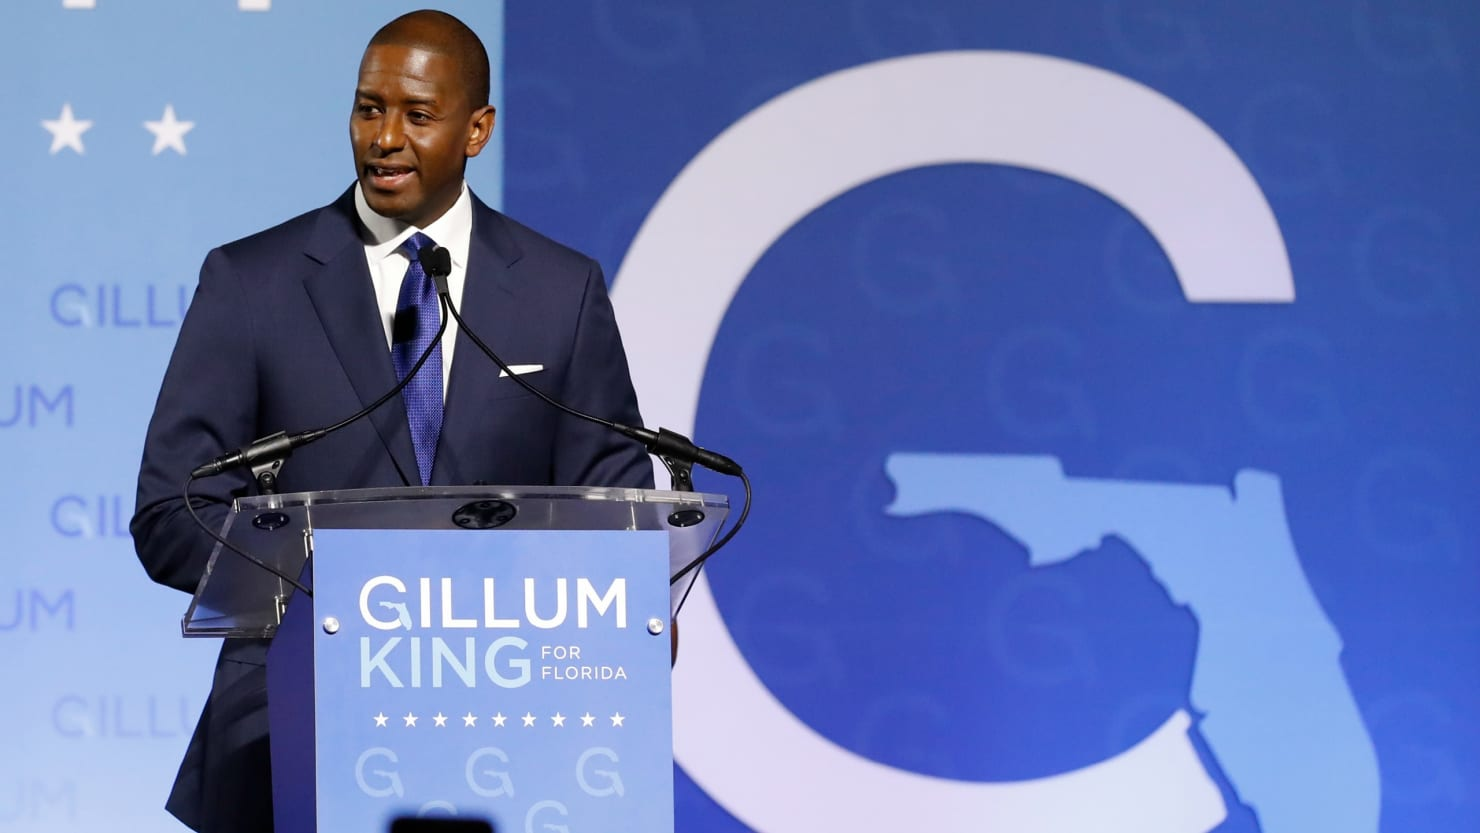 Andrew Gillum rescinds concession